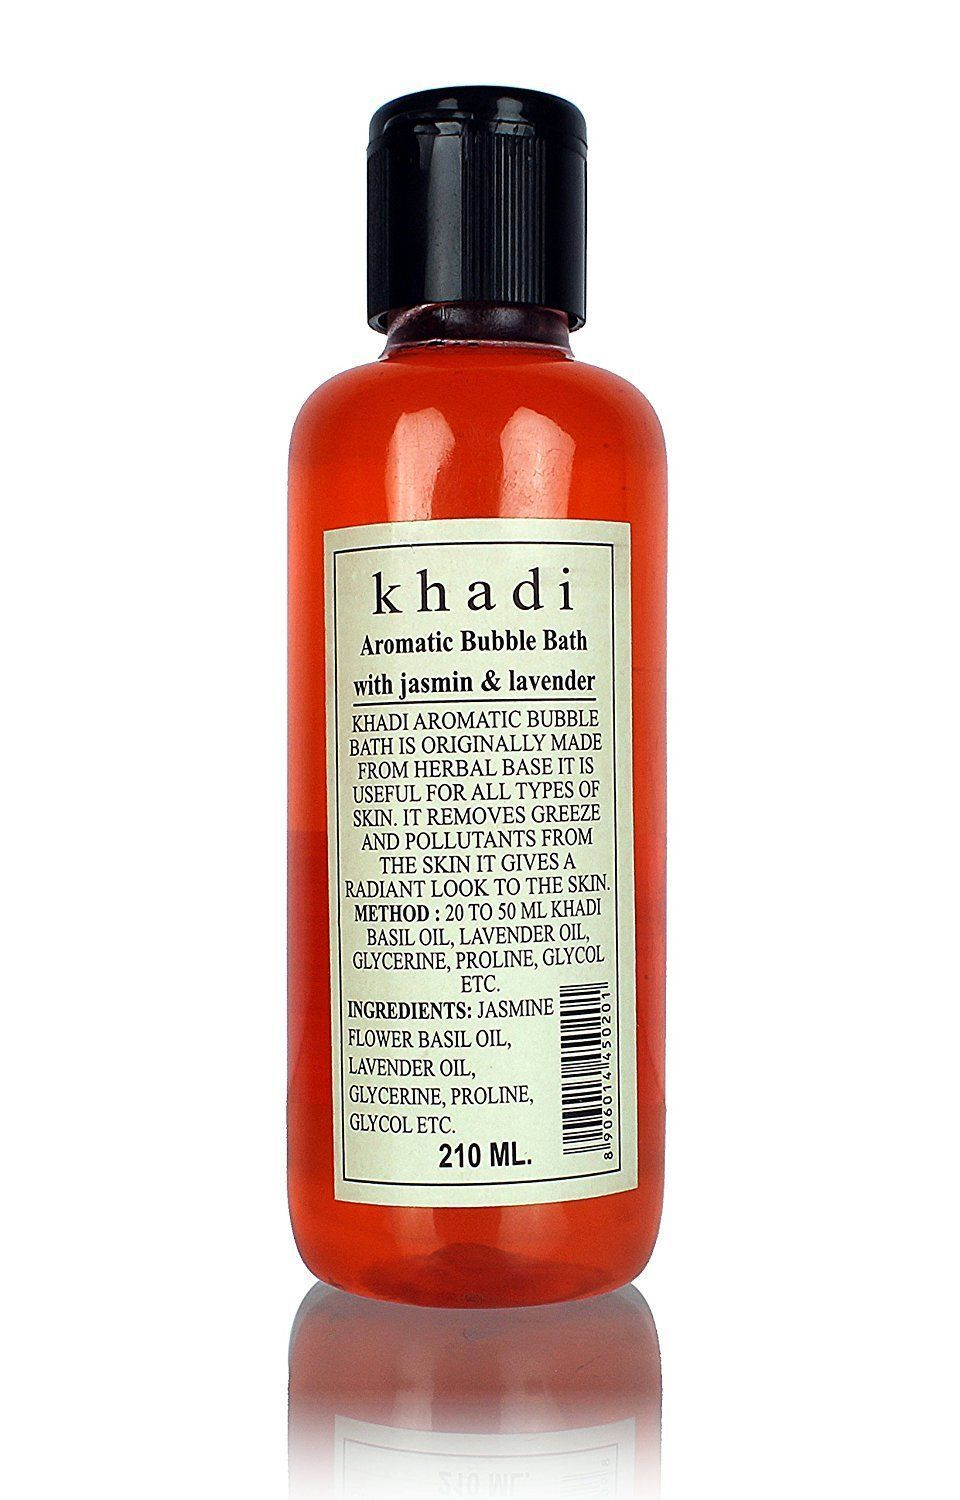 KHADI BUBBLE BATH NATURAL HERBAL AROMATIC WITH JASMINE & LAVENDER 210 ML image 1